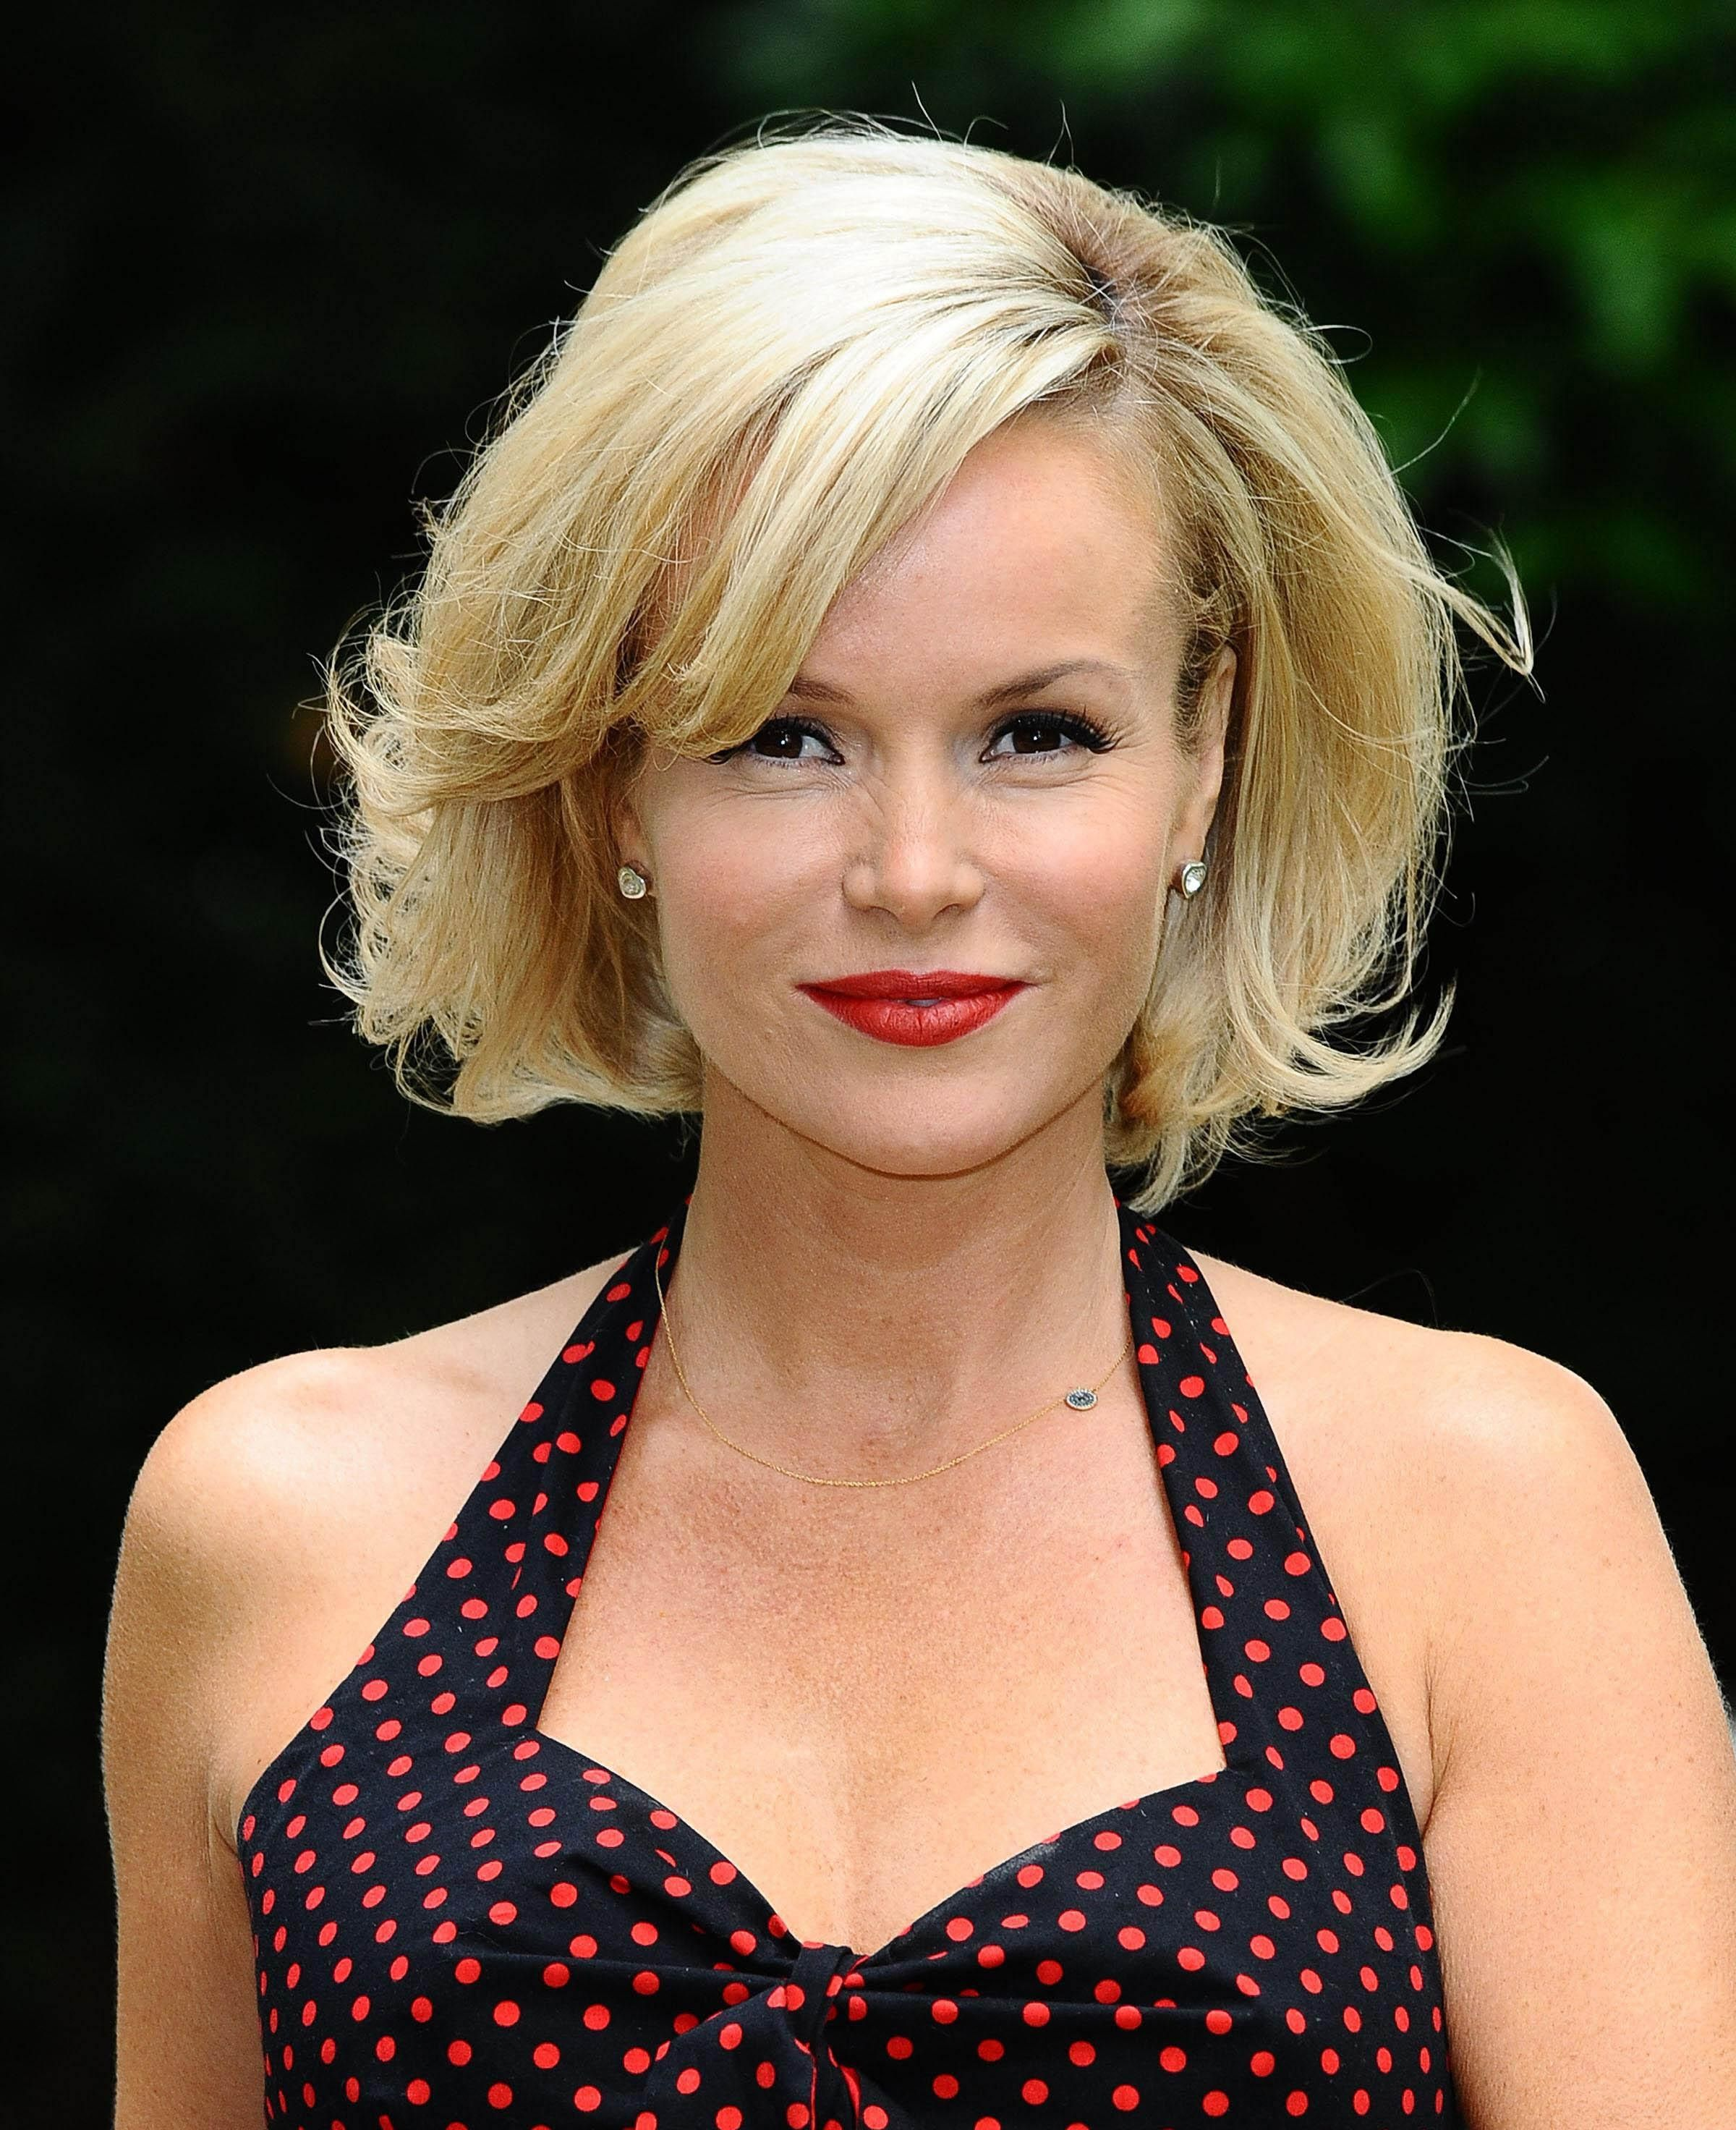 Amanda Holden Sex Video amanda holden 'over hellish time in life'